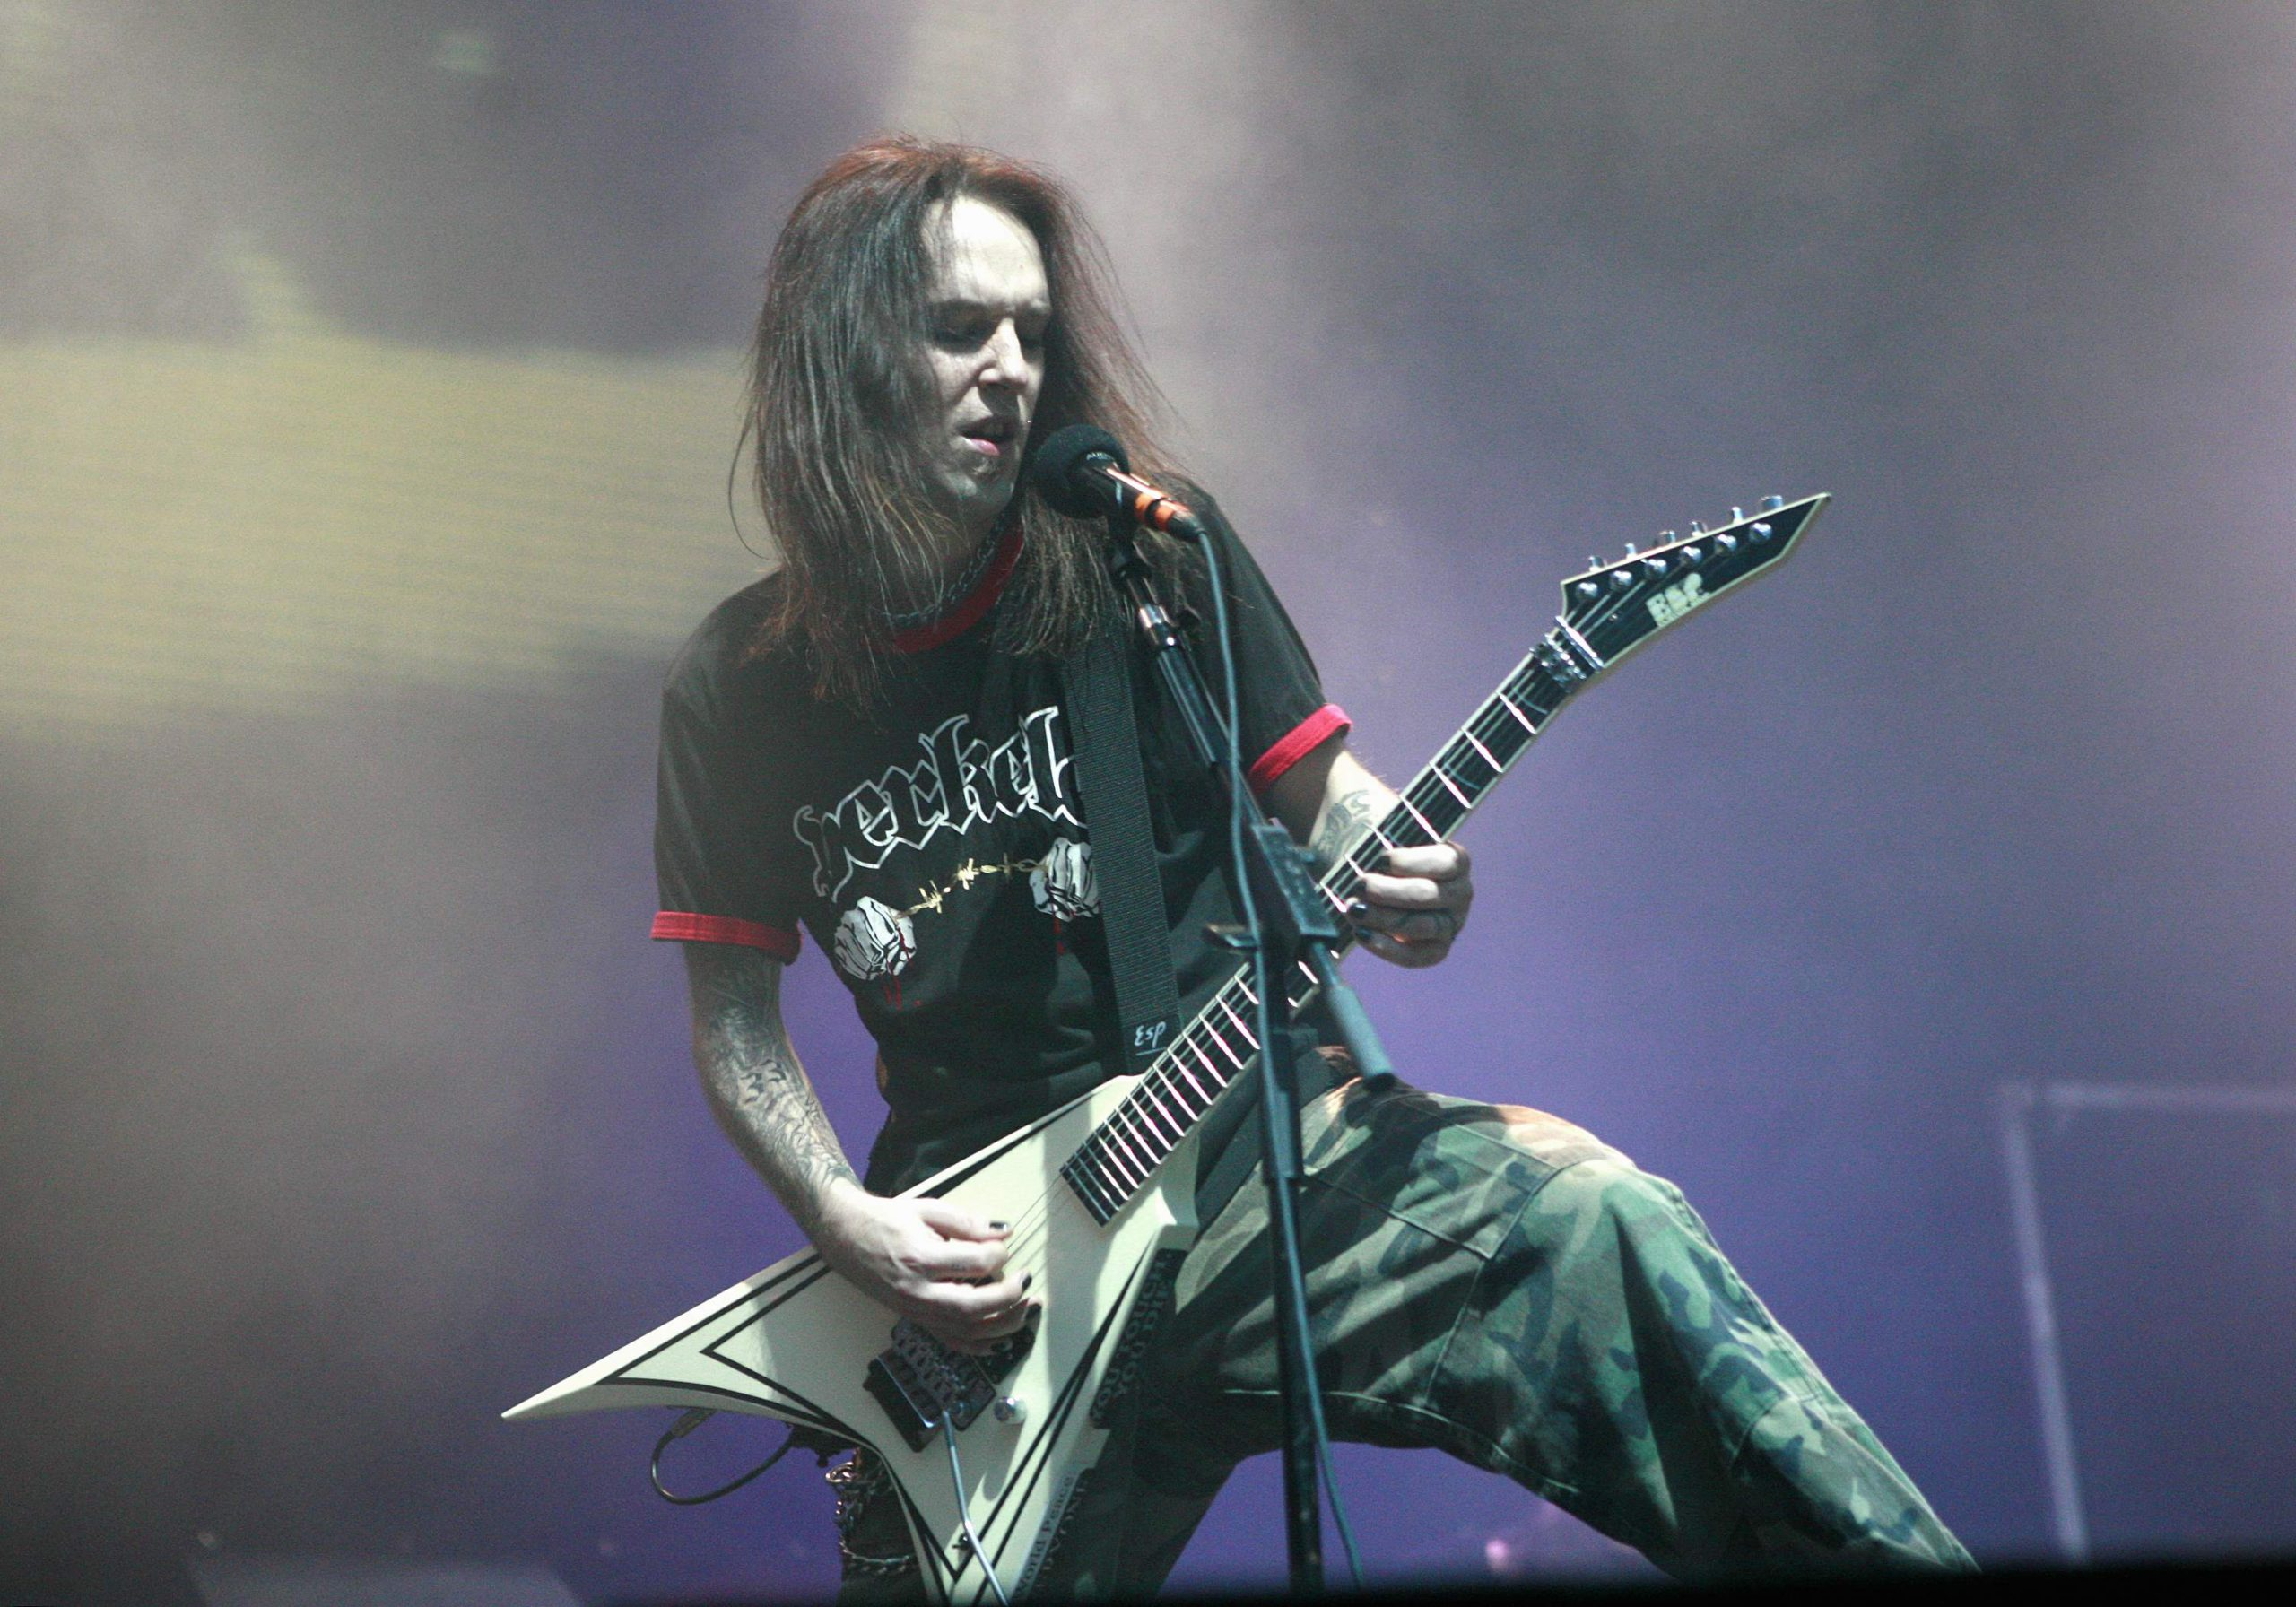 Children of Bodom lead singer and guitarist Alexi Laiho, 41, has died